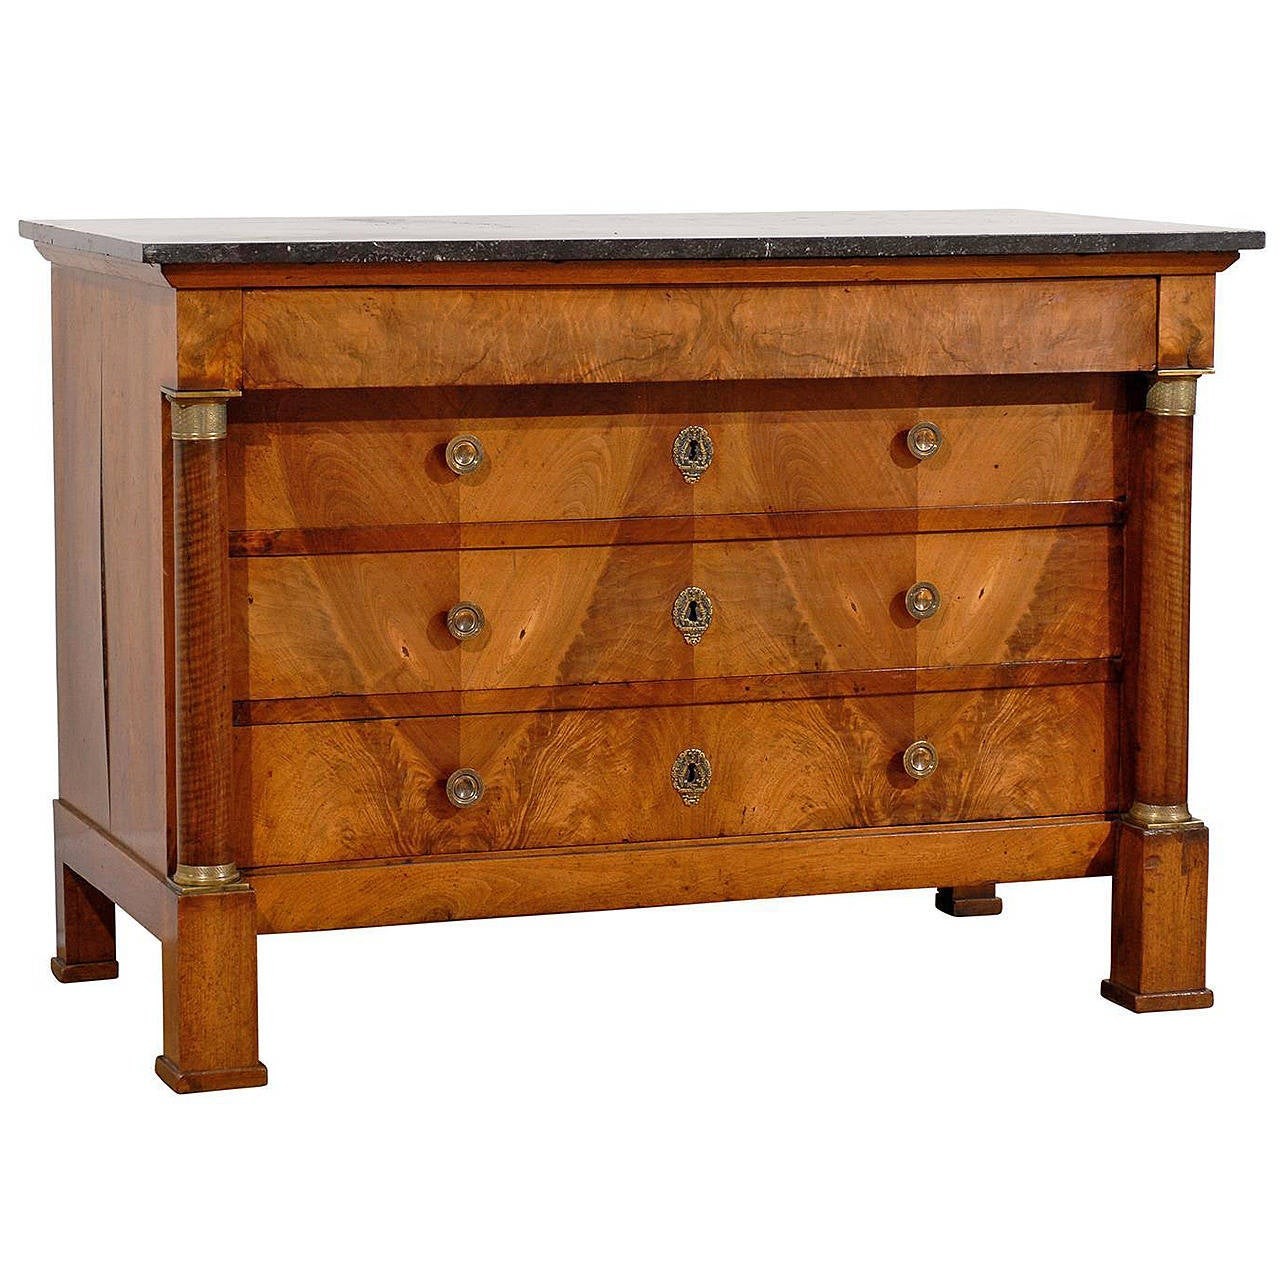 French Early 19th Century Empire Period Four-Drawer Commode with Marble Top For Sale